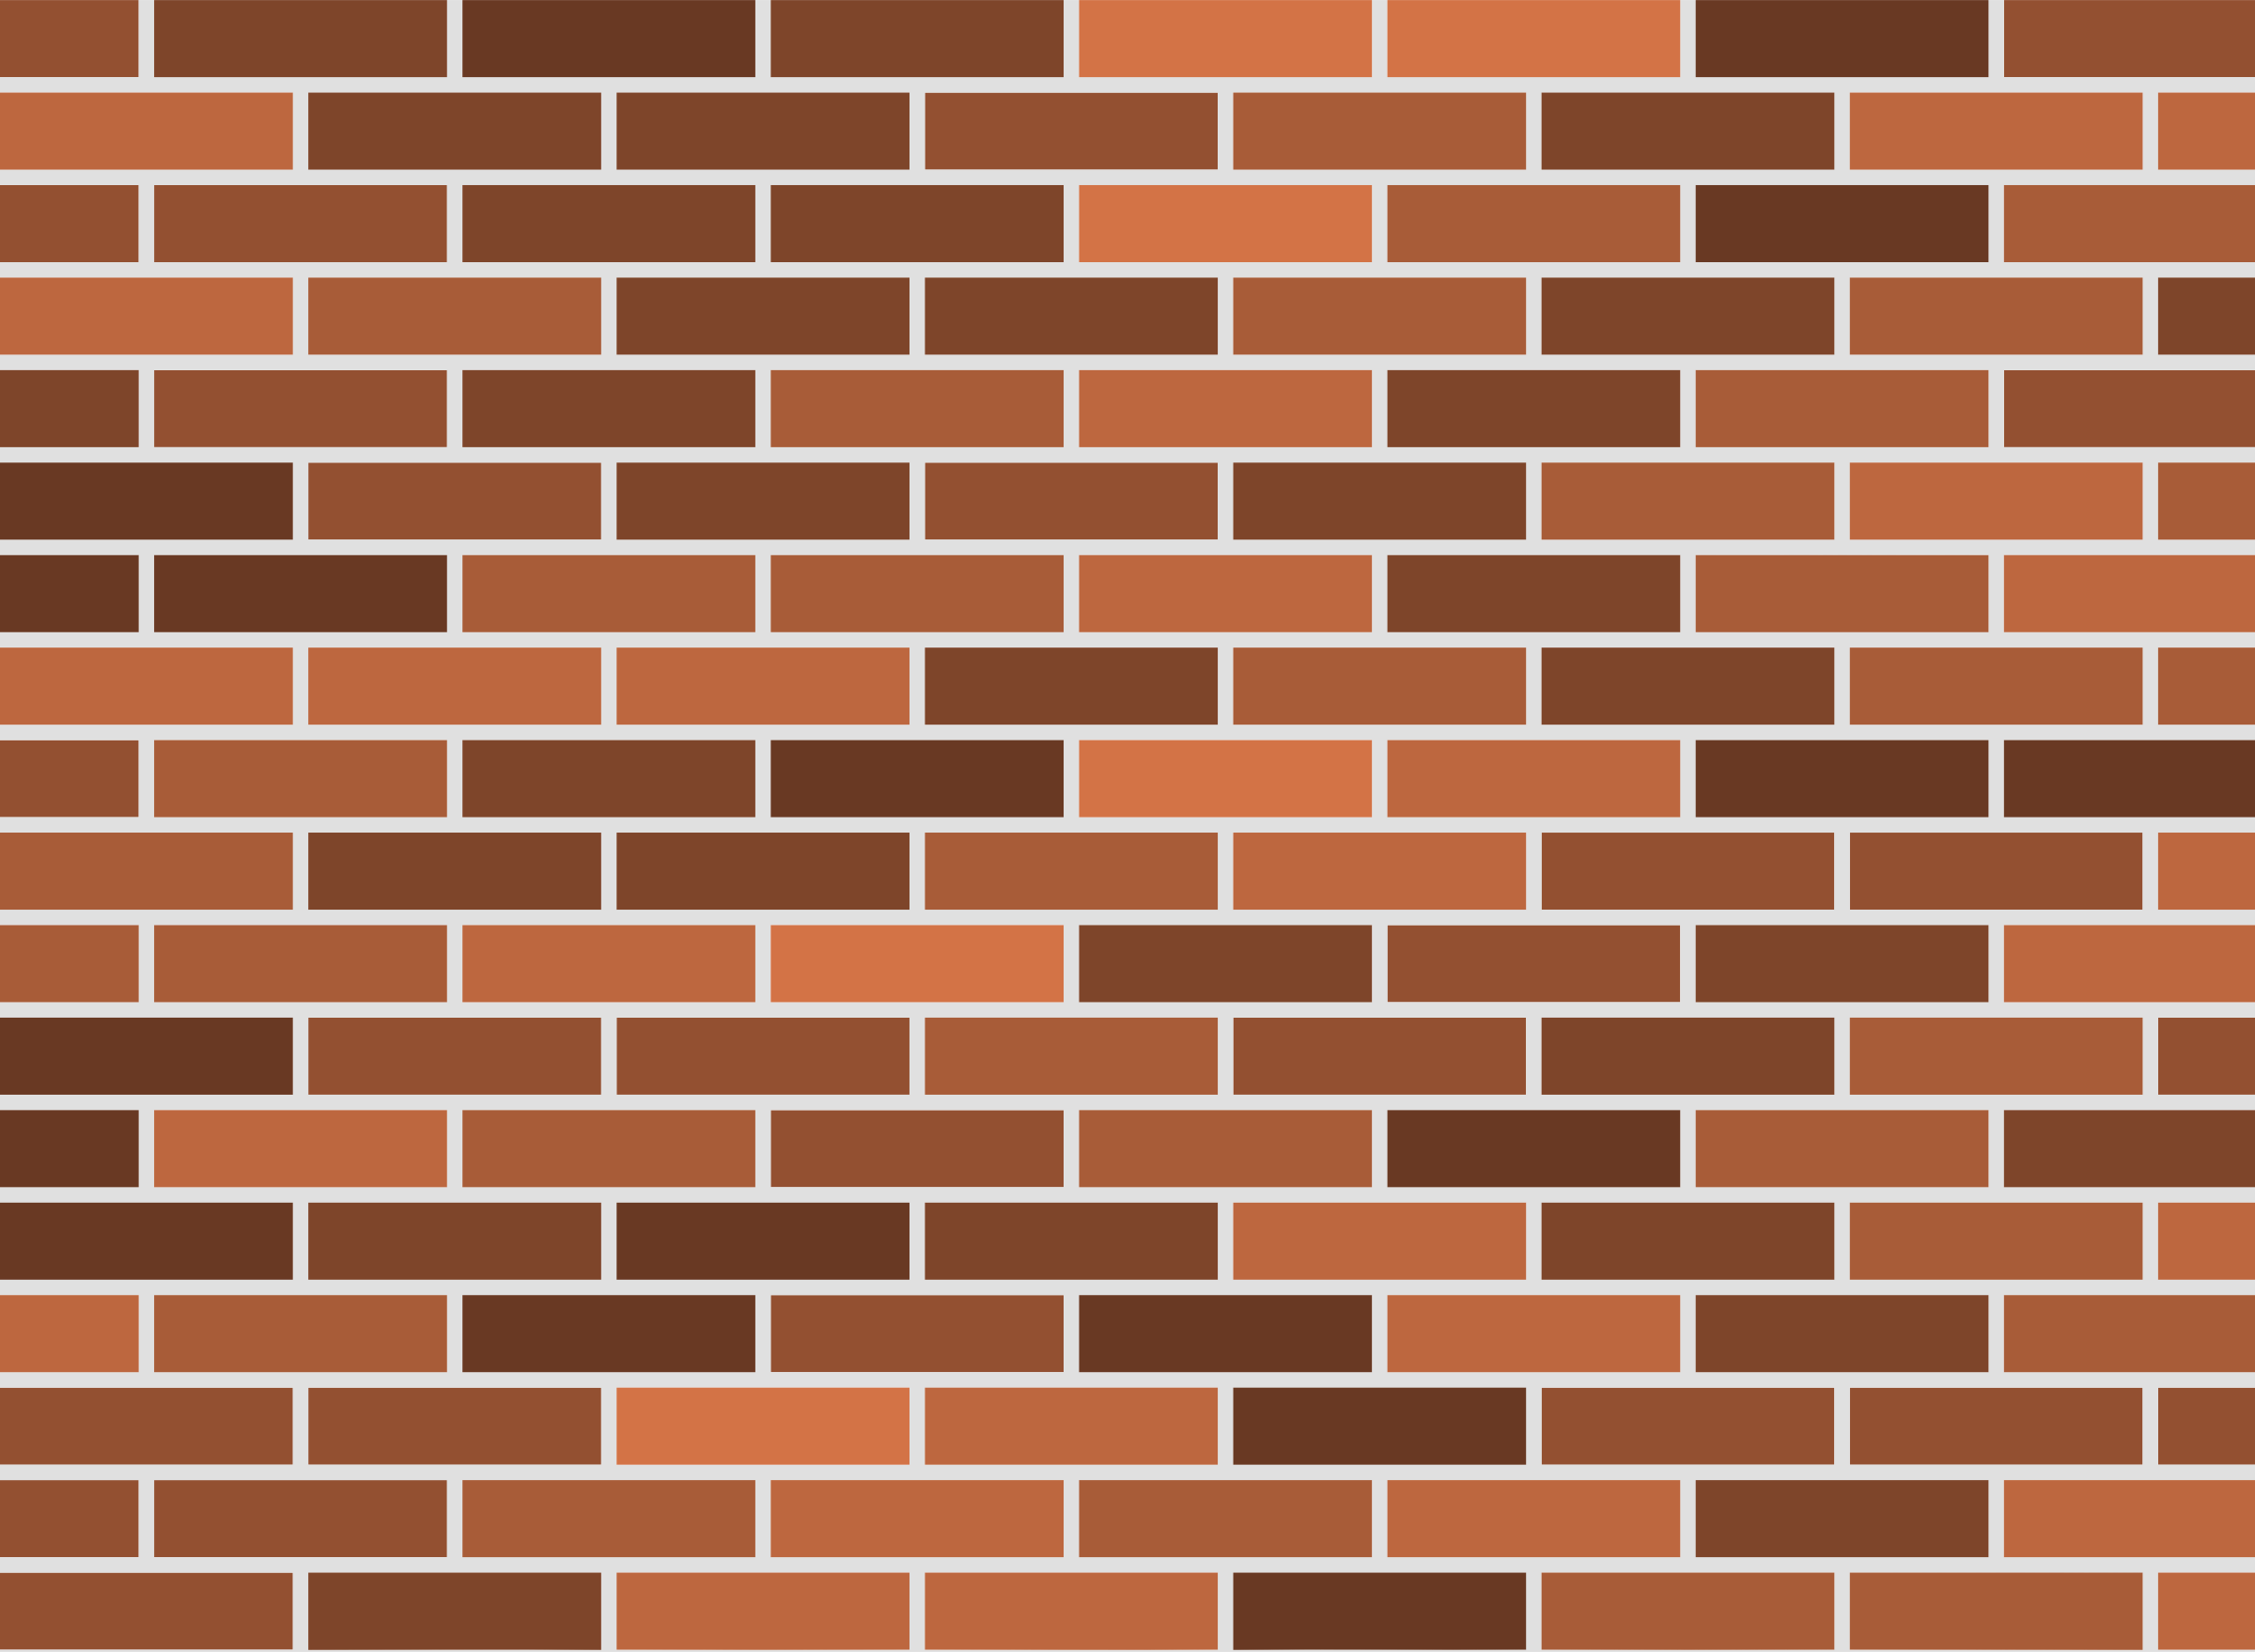 Clipart brick texture free from clipartbarn.com.